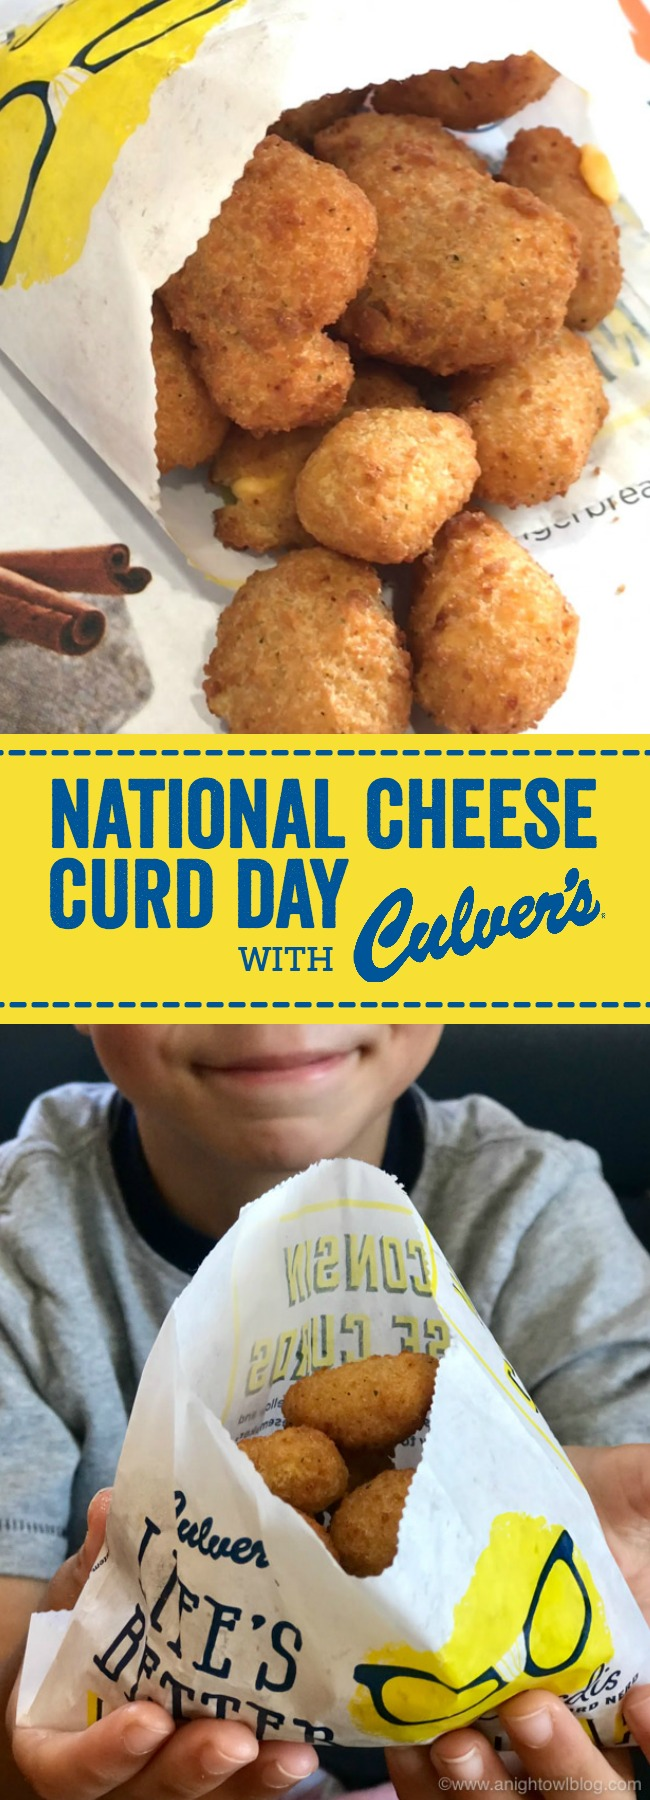 Culvers National Cheese Curd Day